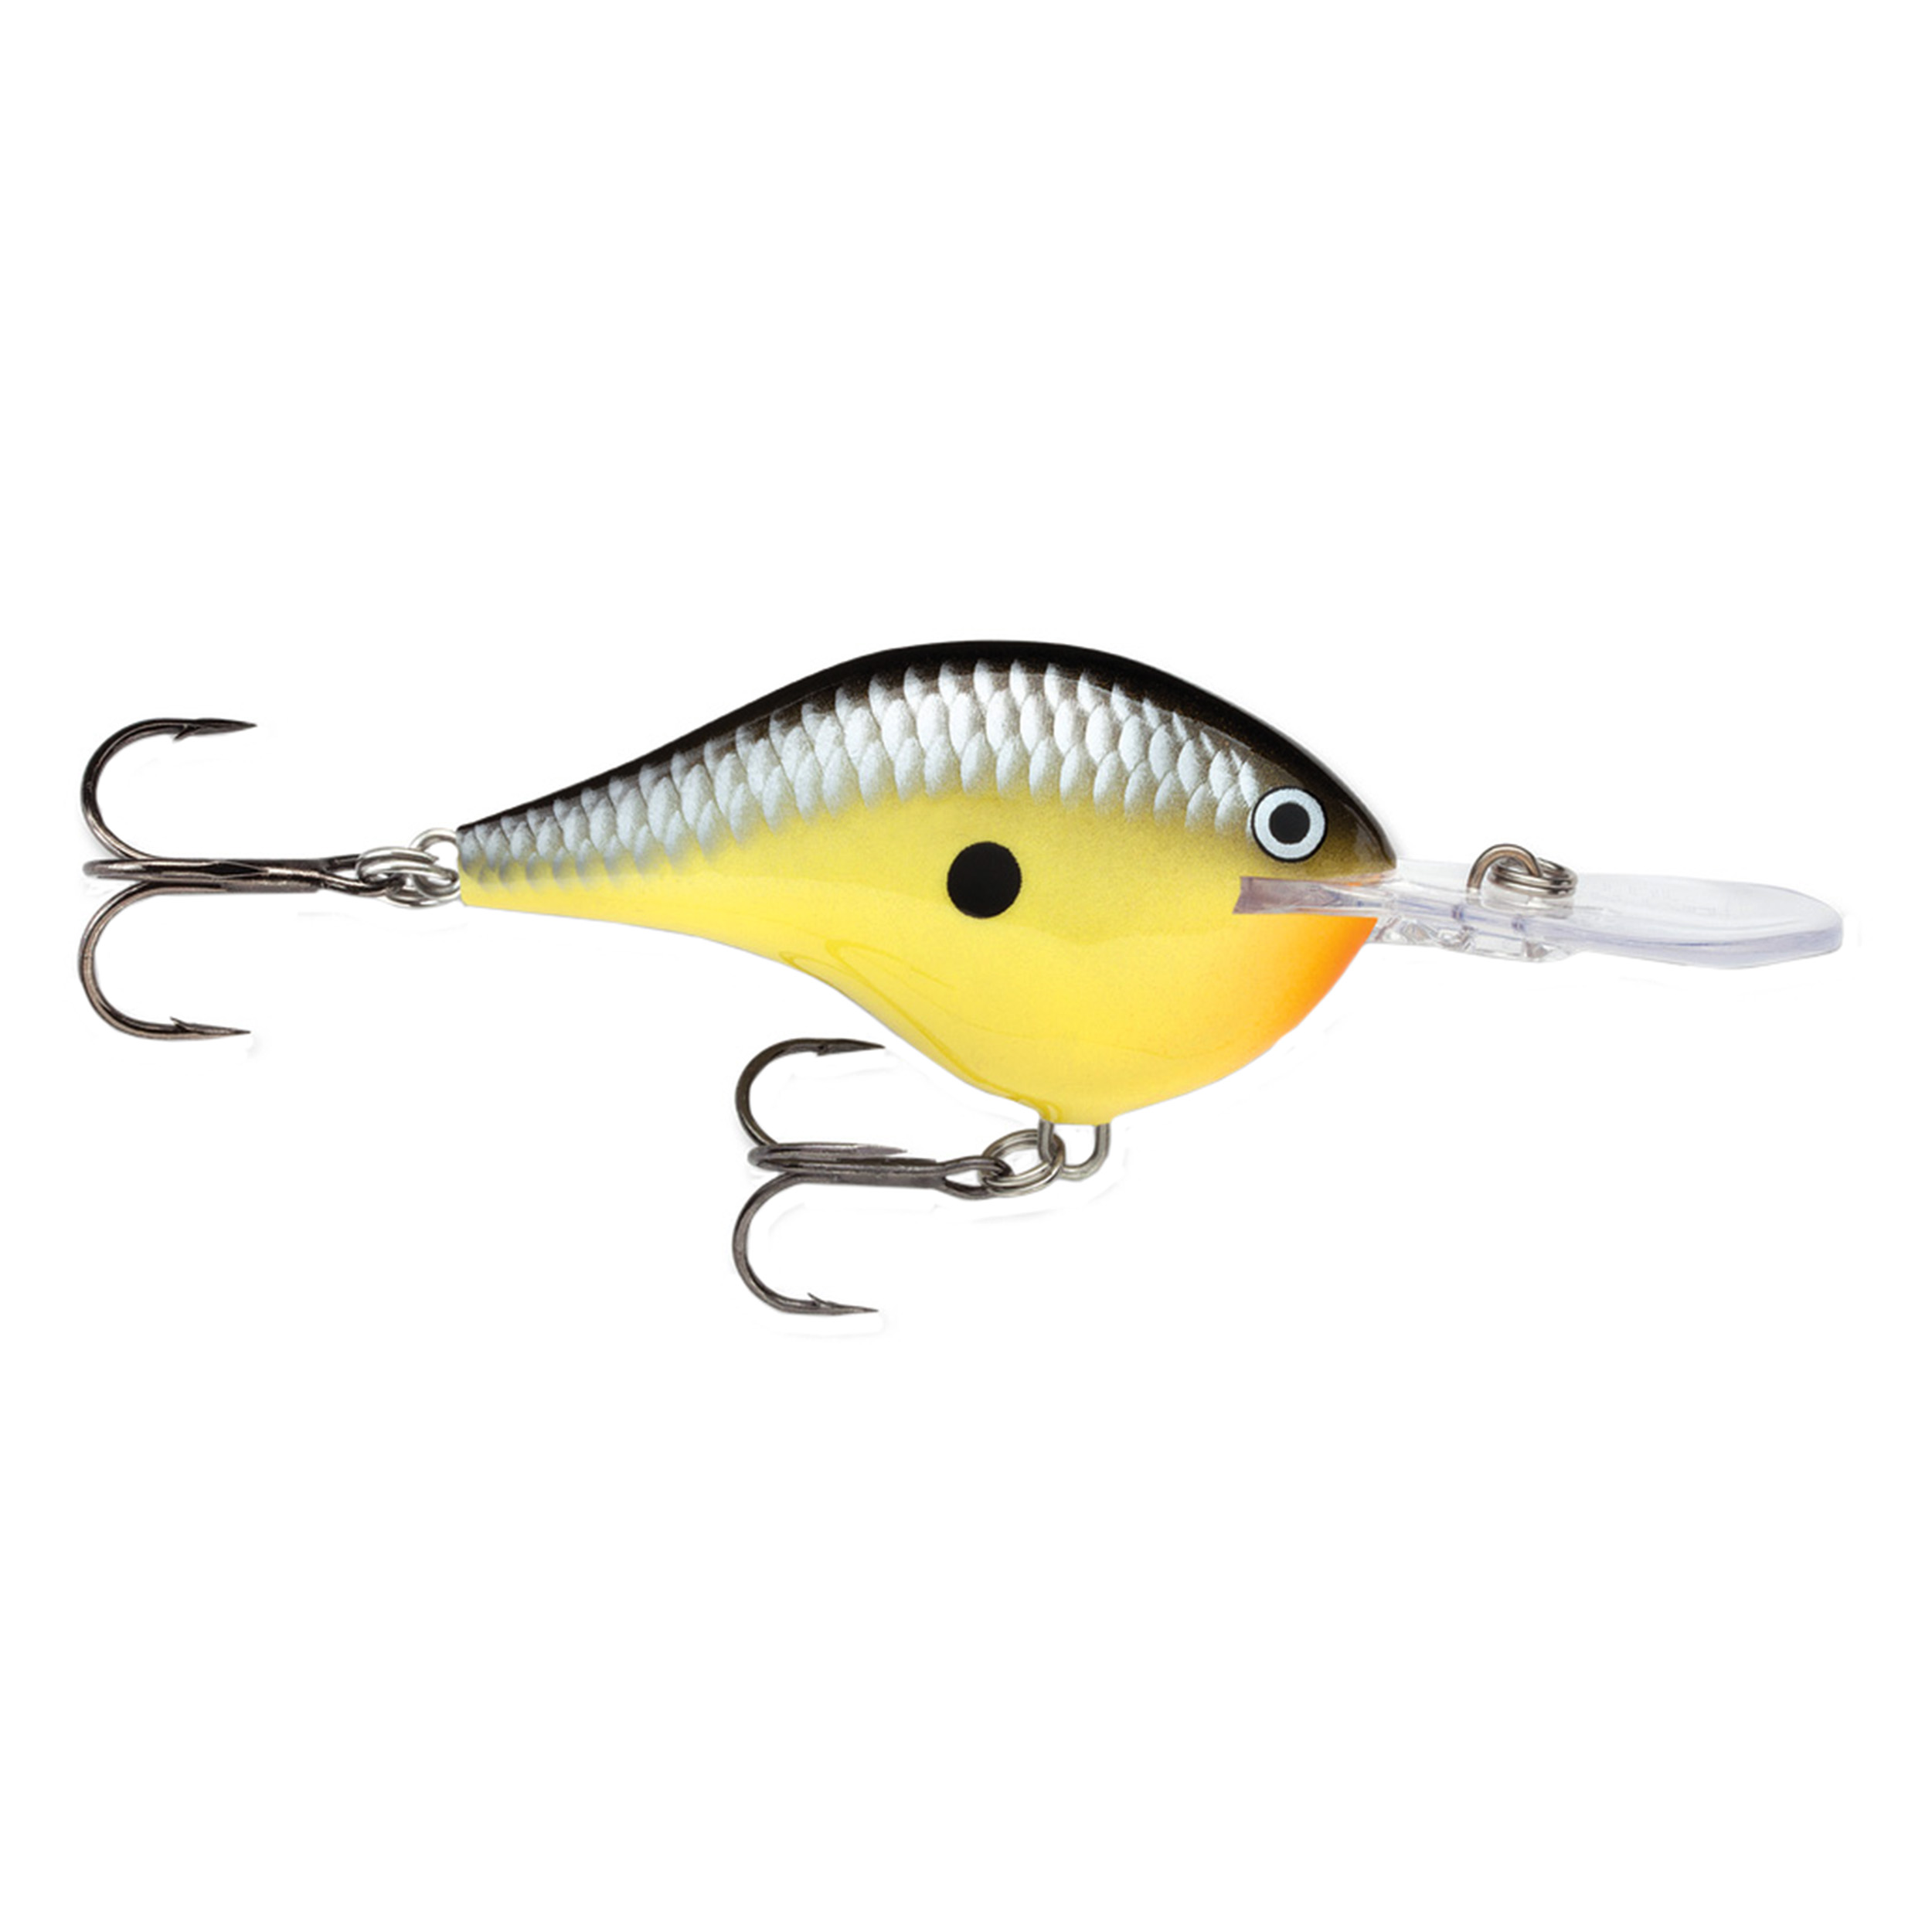 "Rapala Dives-To Series Custom Ink Lure Size 04, 2"" Length, 4' Depth, 2 Number 6 Treble Hooks, Old School, Per 1 by Rapala"